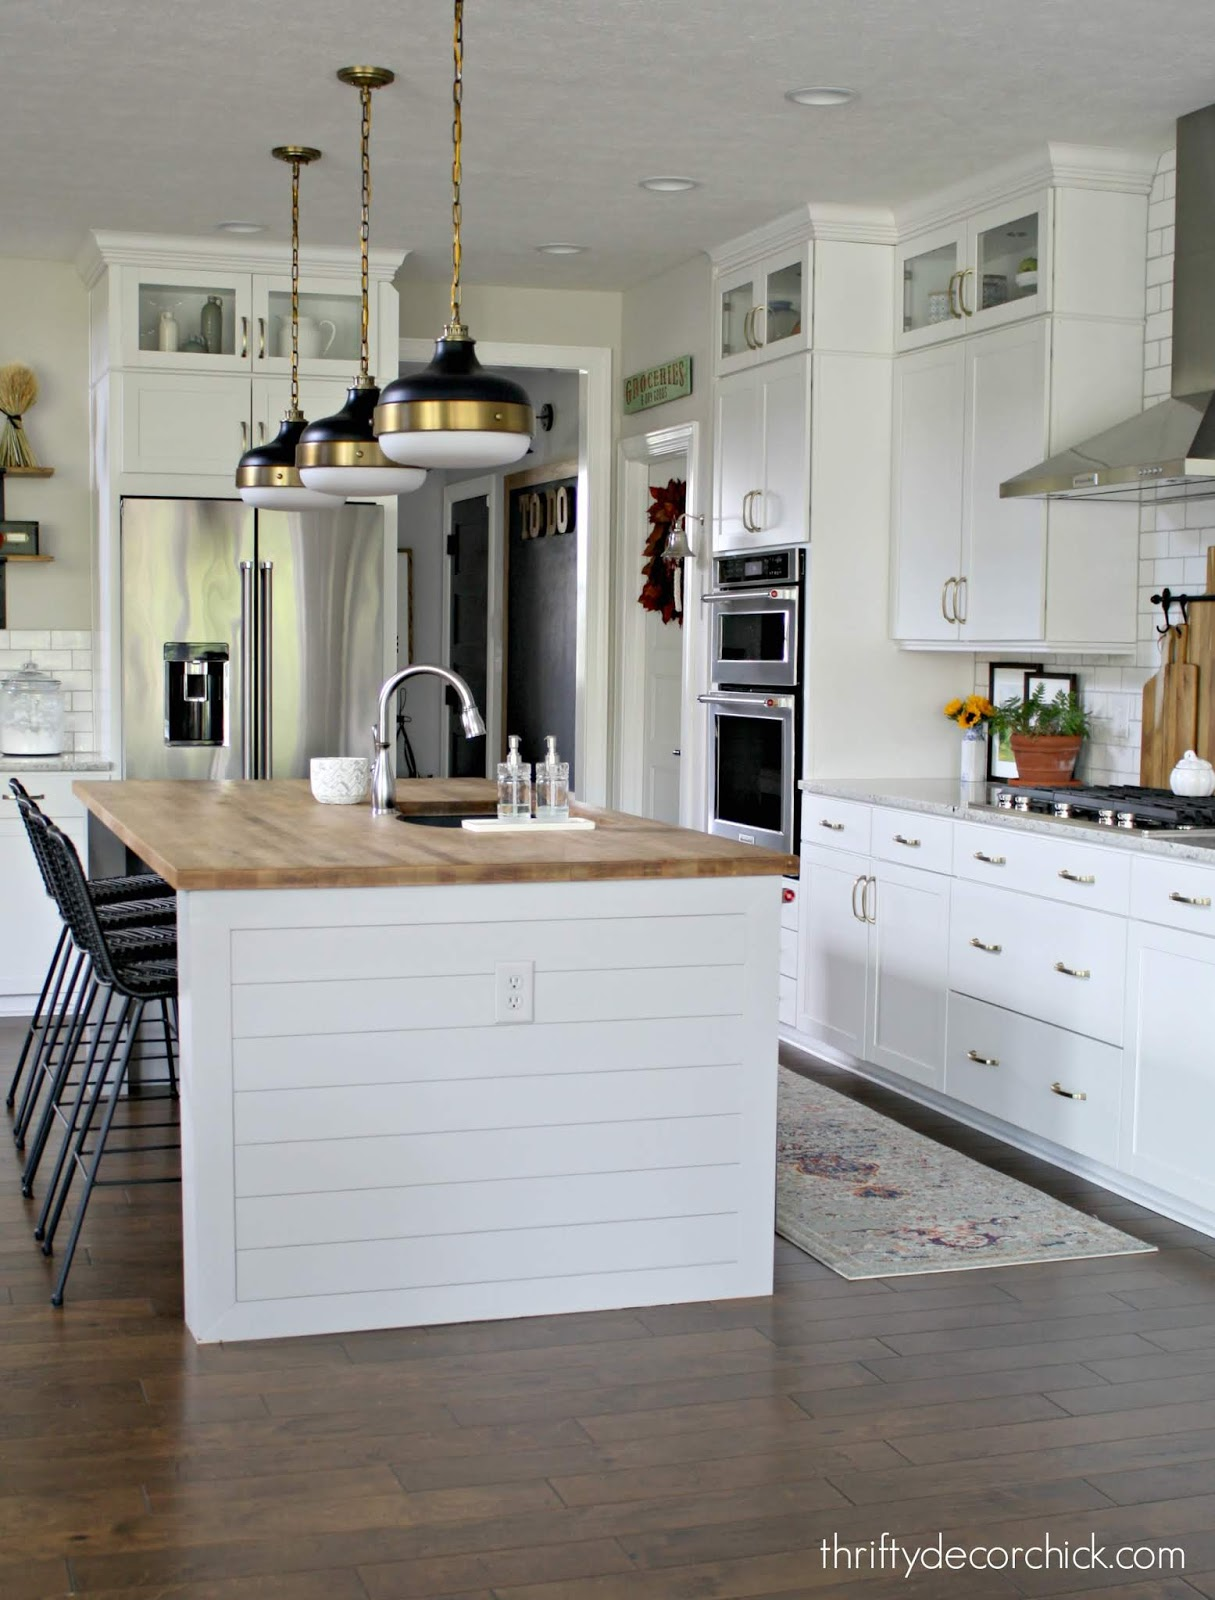 How to extend sides of kitchen island